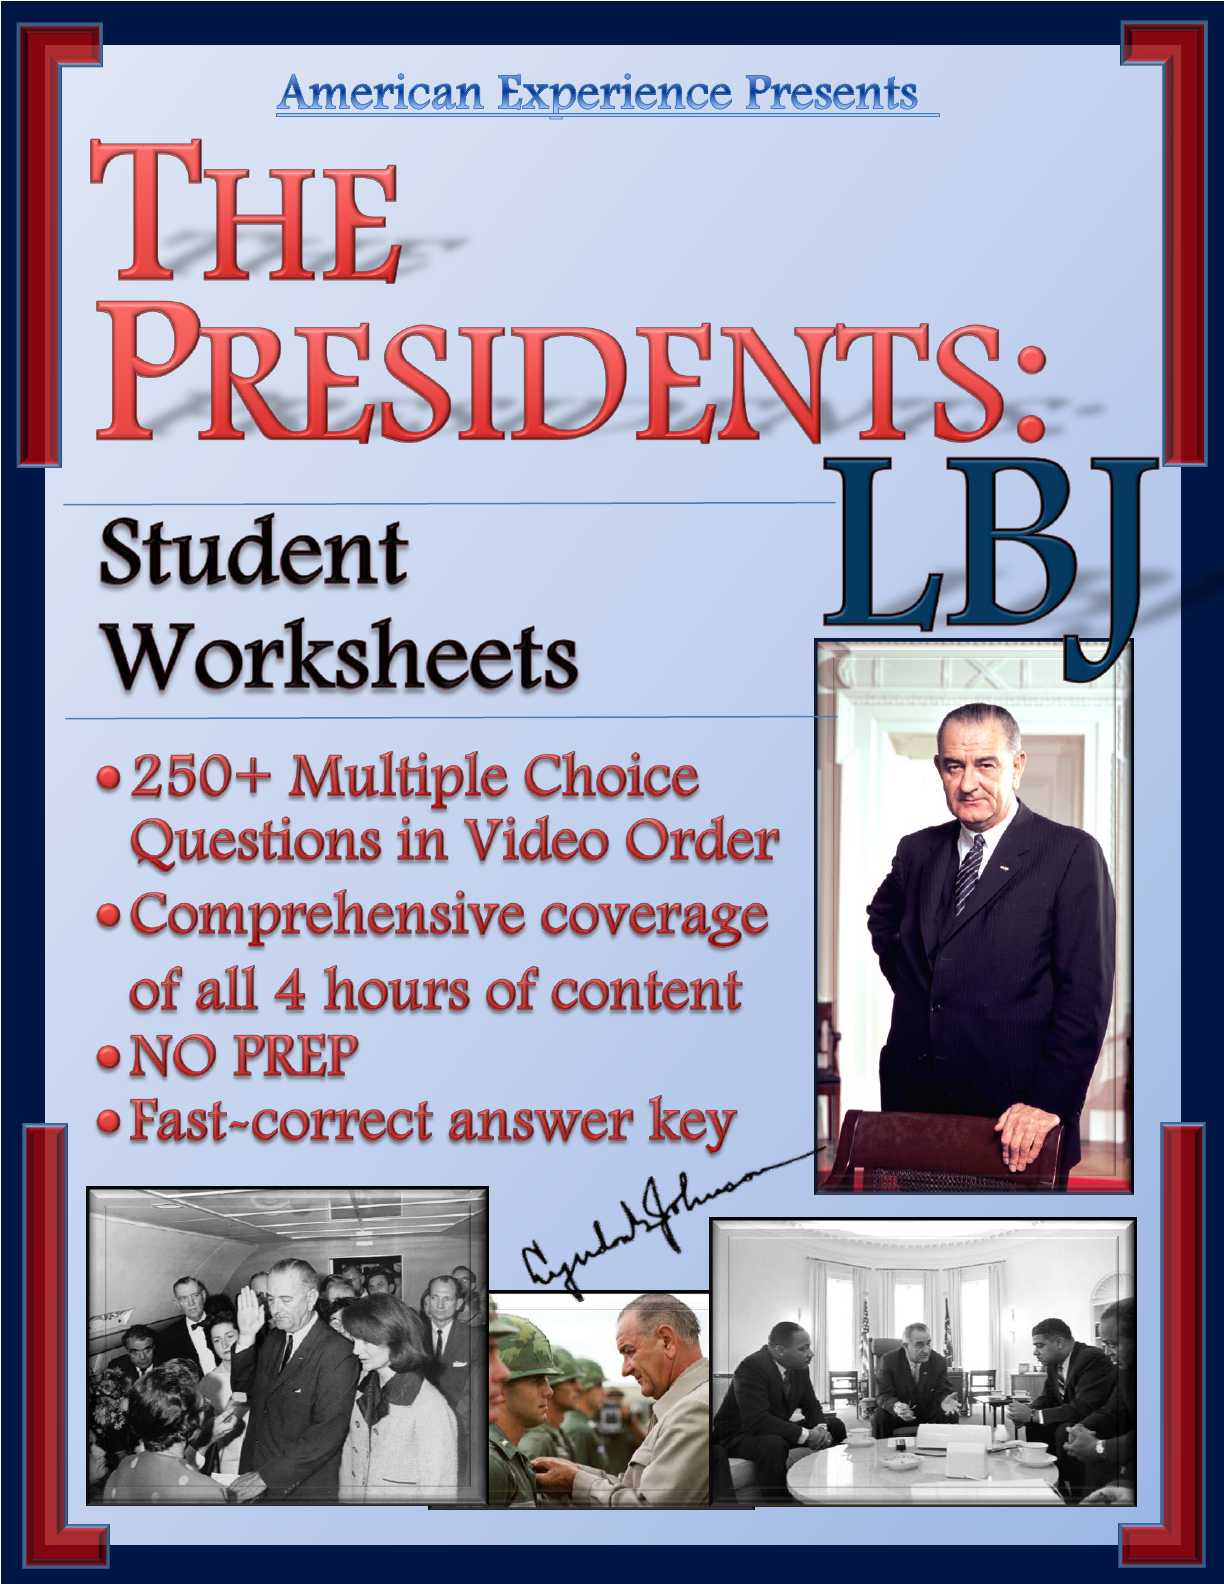 medium resolution of American Experience LBJ Worksheets Help Students Master the 1960s! More  than 250 Multiple Choice Questions…   Social studies lesson